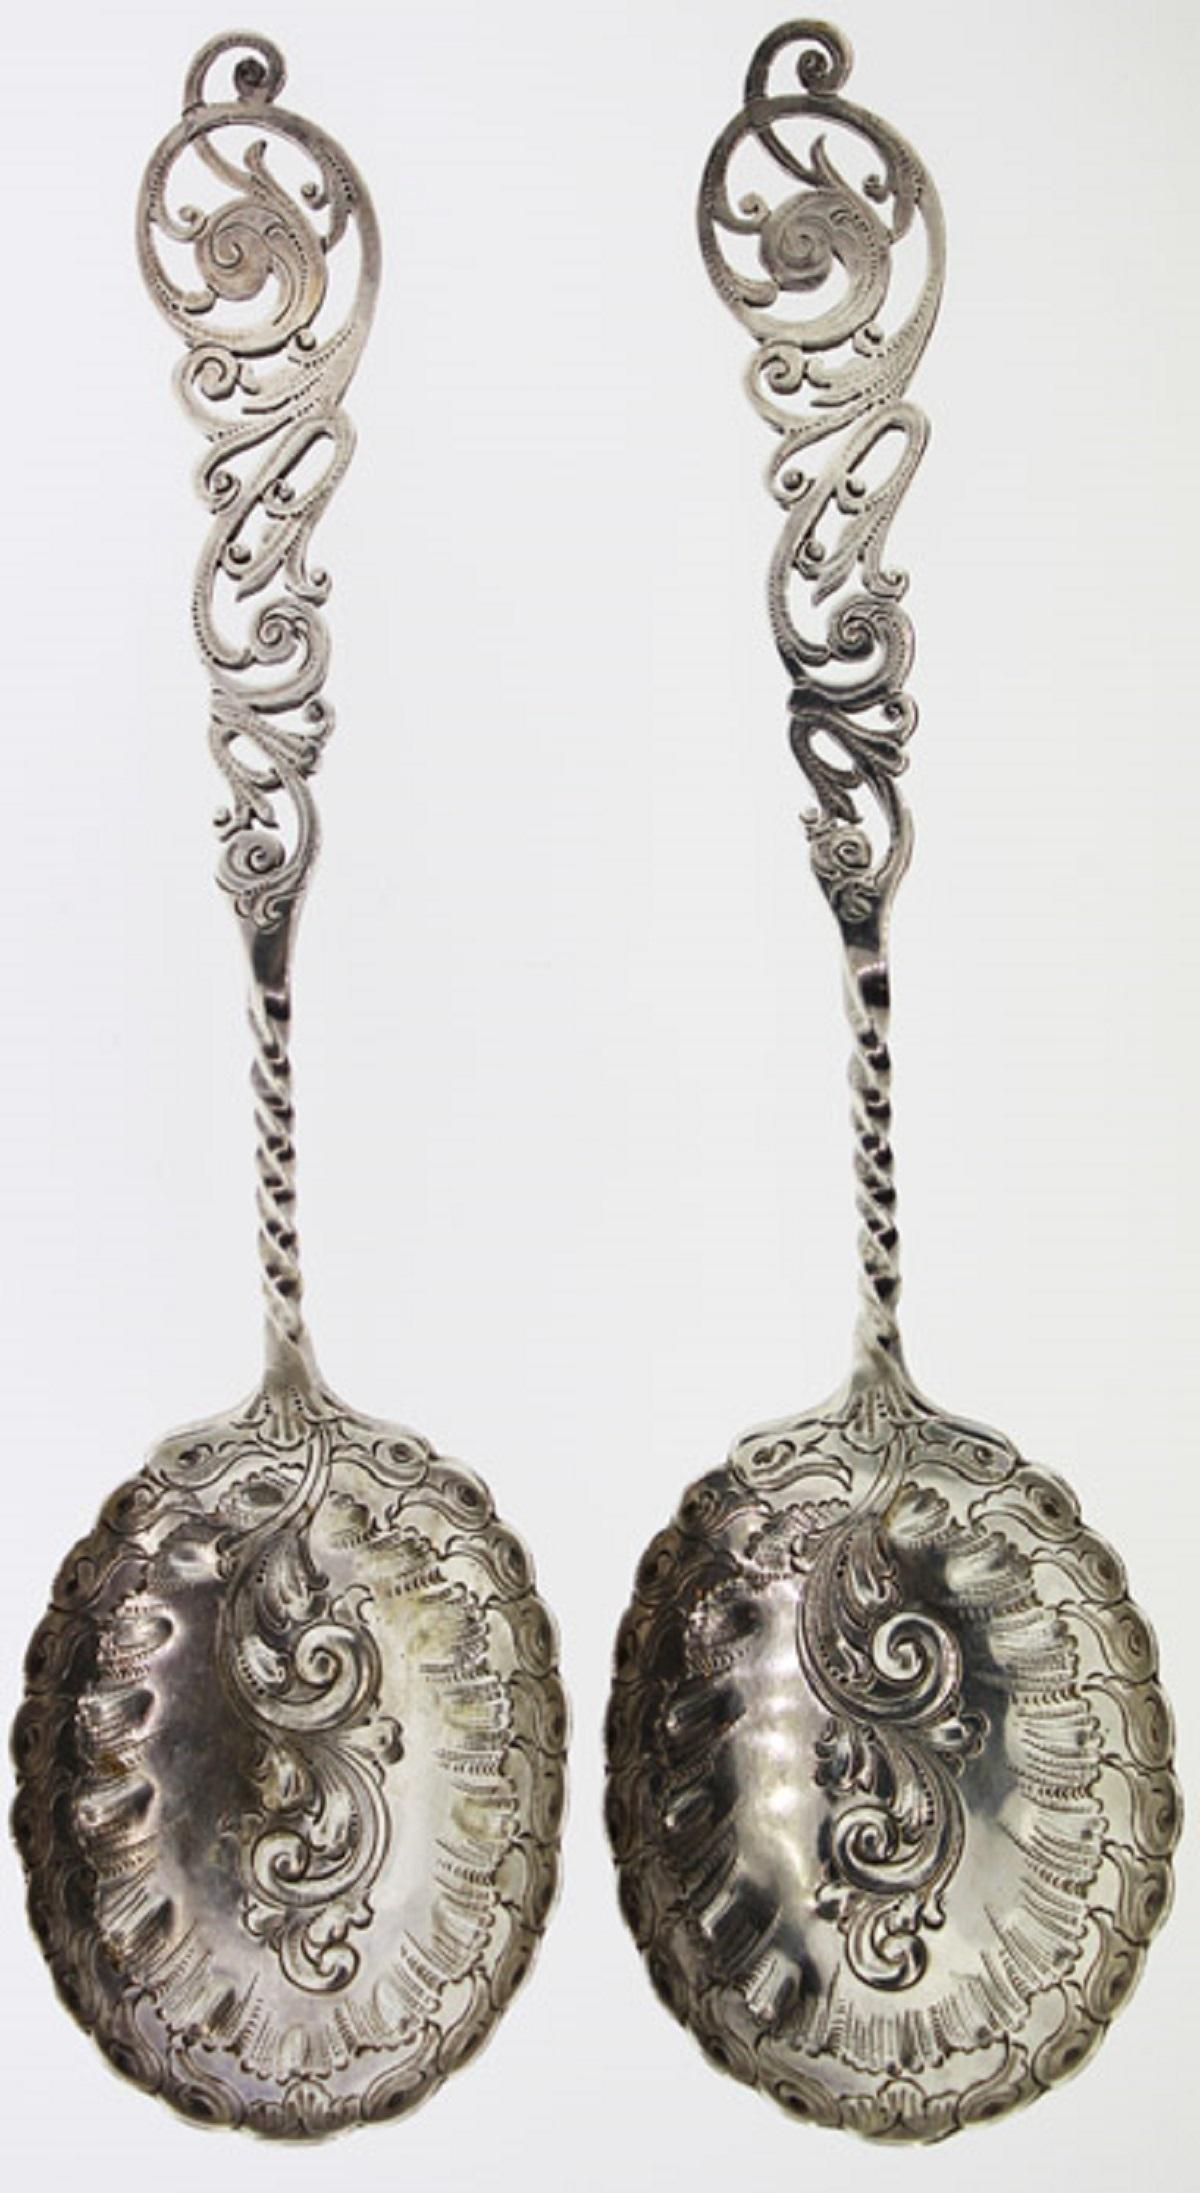 Pair of ornate Antique Silver (0.925) Serving Spoons